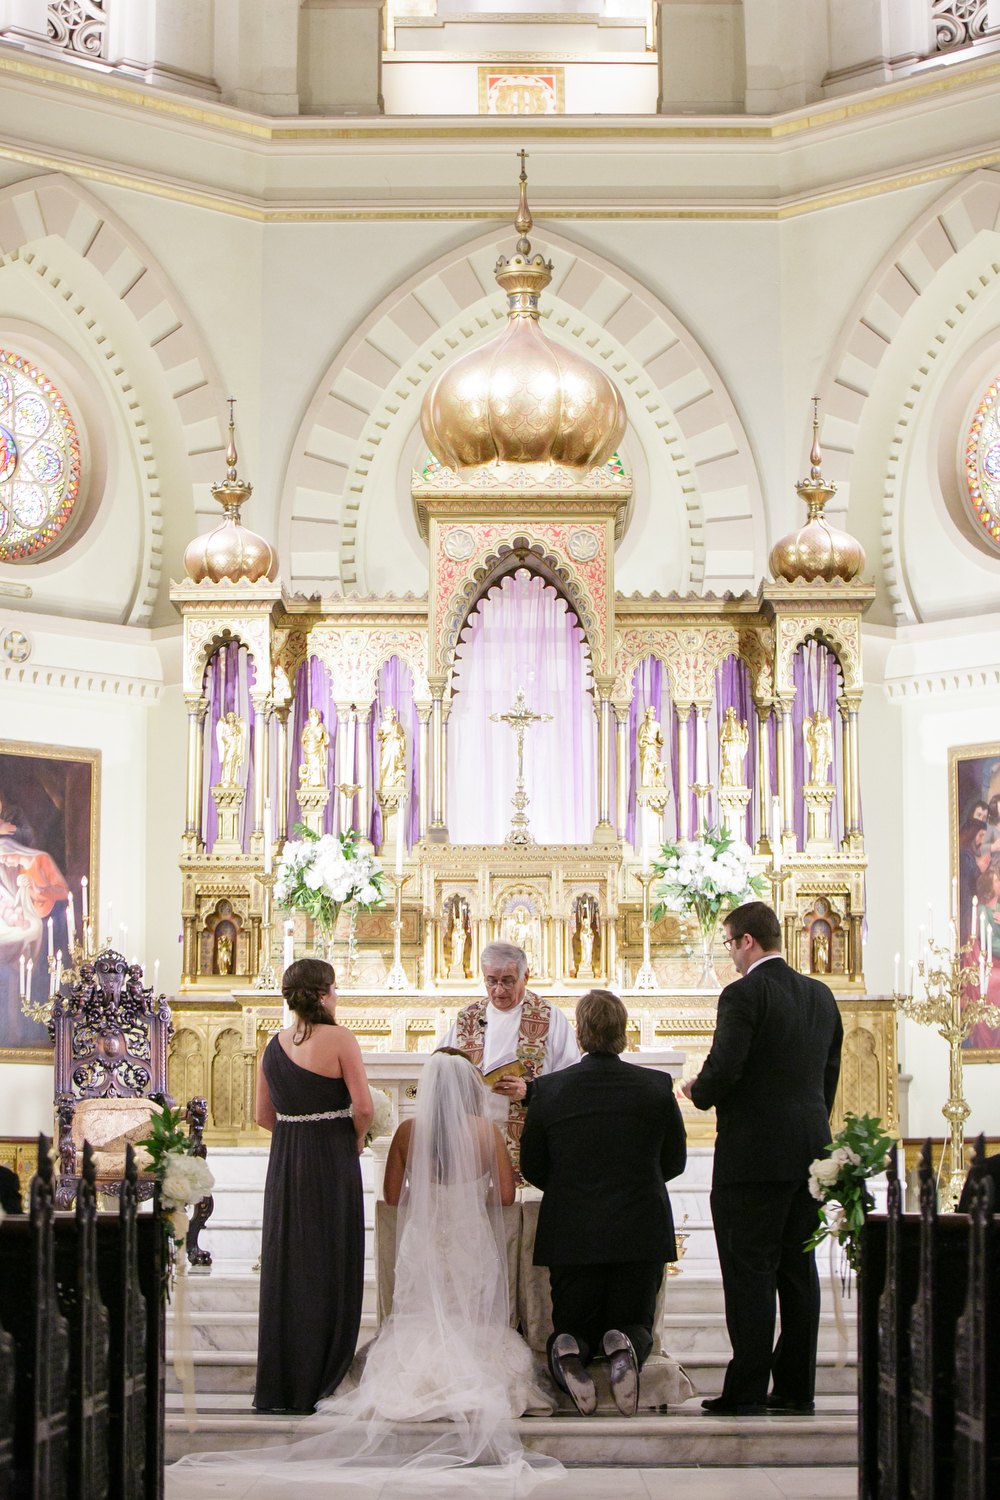 bride and groom kneeling at wedding chapel altar during catholic ceremony